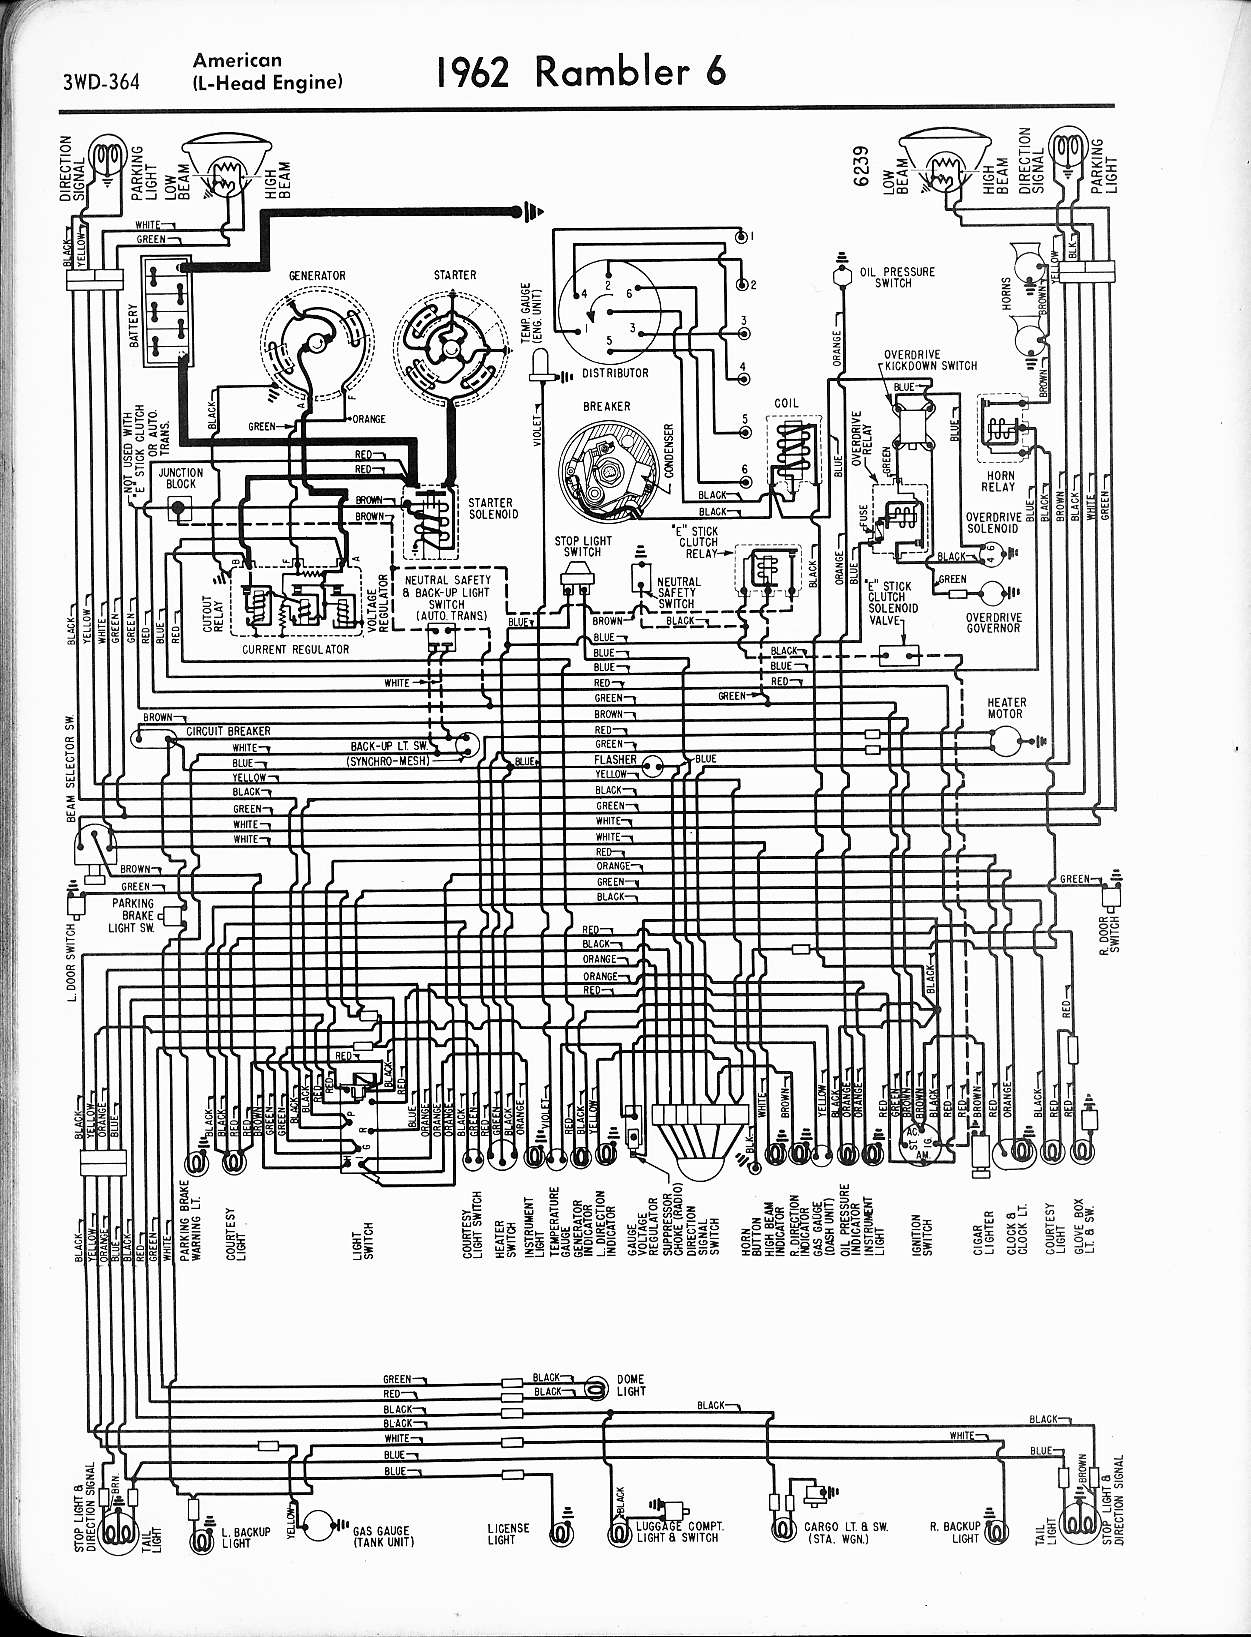 Amc Wiring Diagram Archive Of Automotive 1974 Javelin Rambler Diagrams The Old Car Manual Project Rh Oldcarmanualproject Com